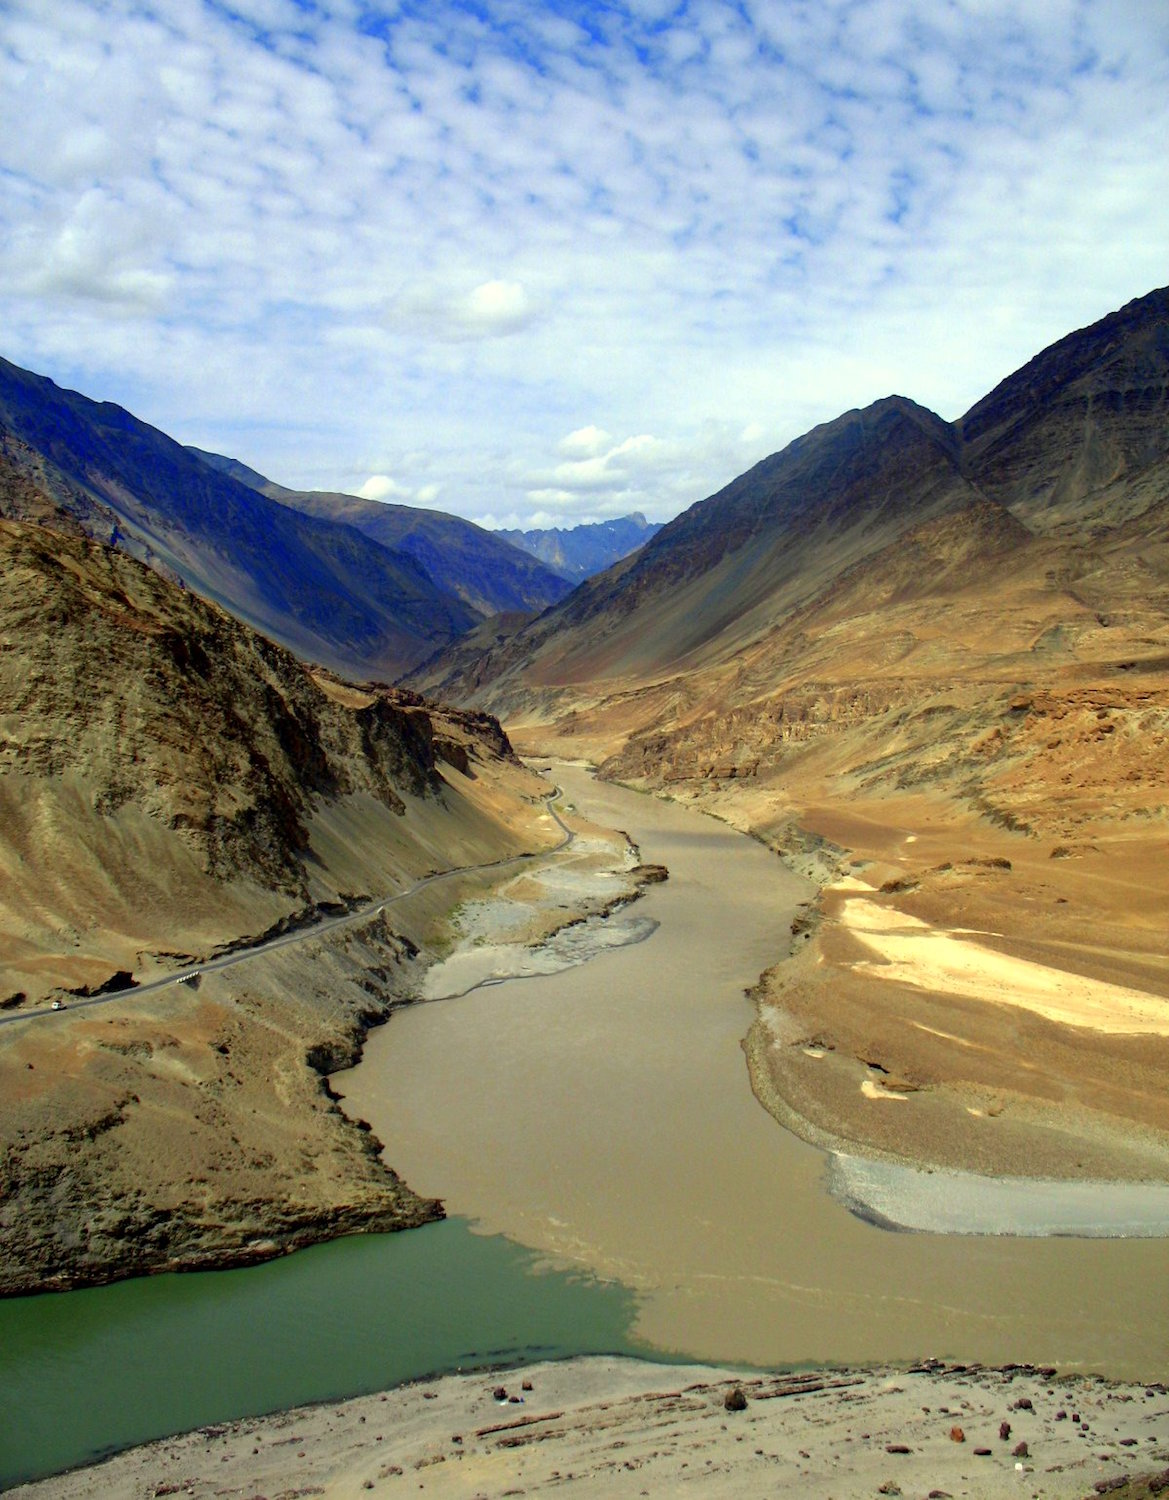 Confluence of Indus (green) and Zanskar (brown) rivers By Payal Vora from Bay Area (A tale of two rivers) CC BY 2.0, via Wikimedia Commons